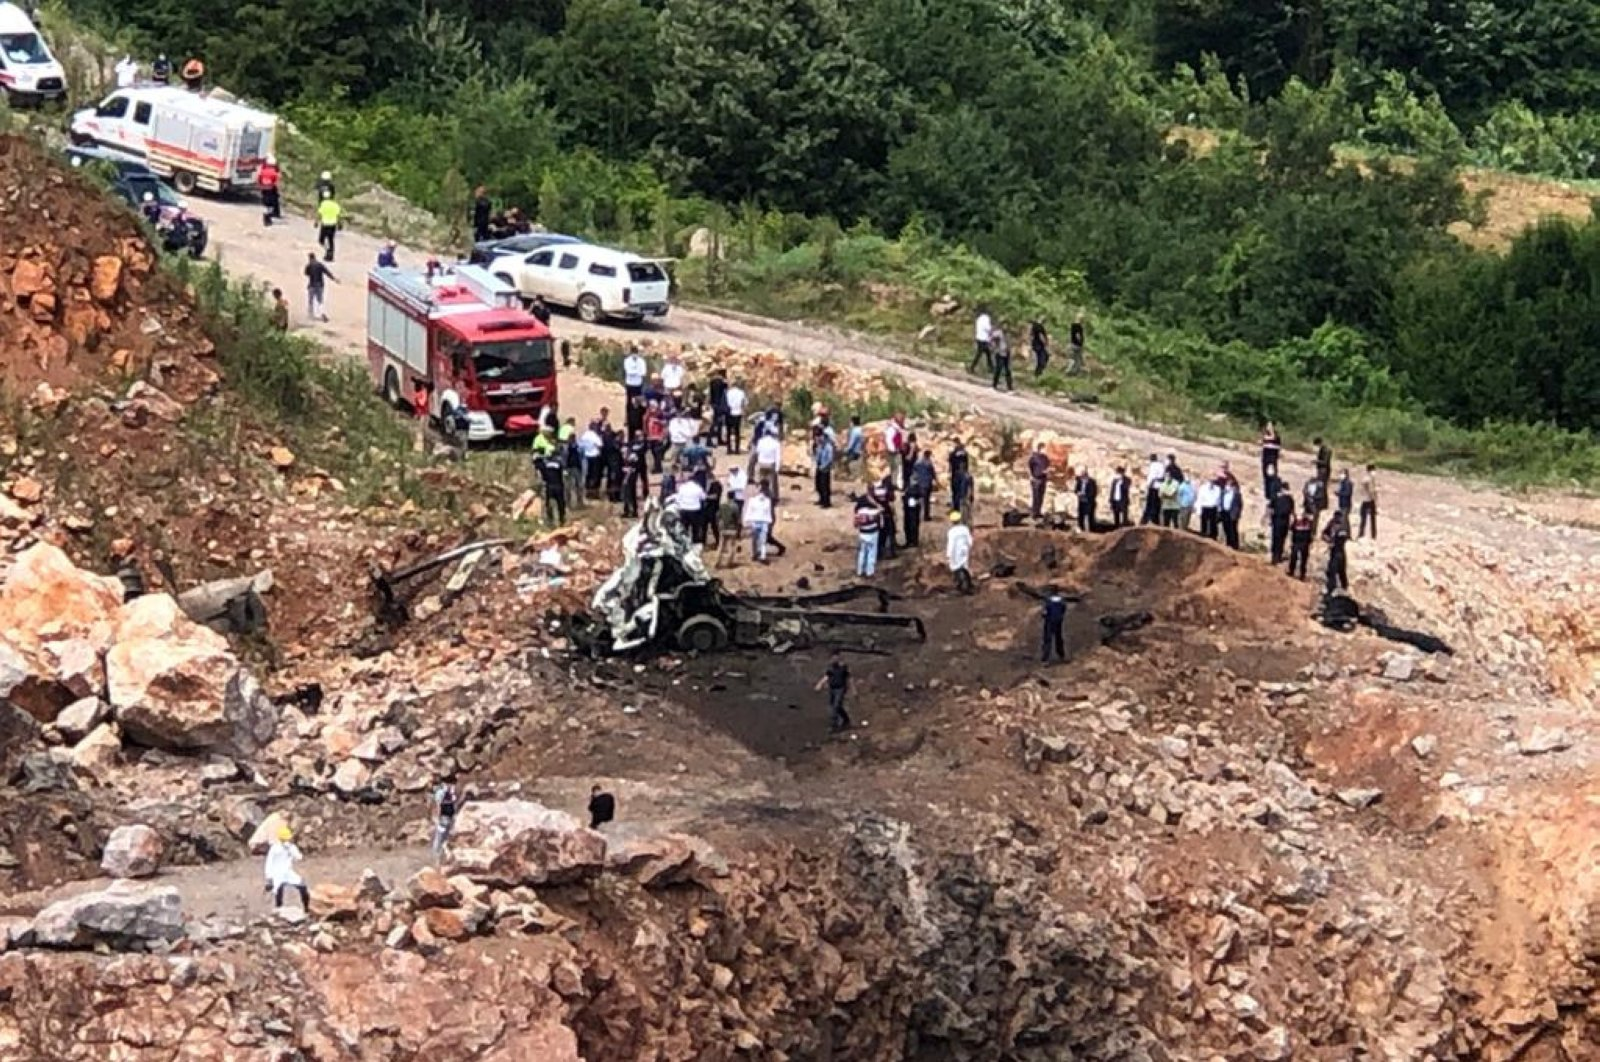 The scene after a second explosion near quarries in Sakarya province killed three soldiers, July 9, 2020. (DHA Photo)